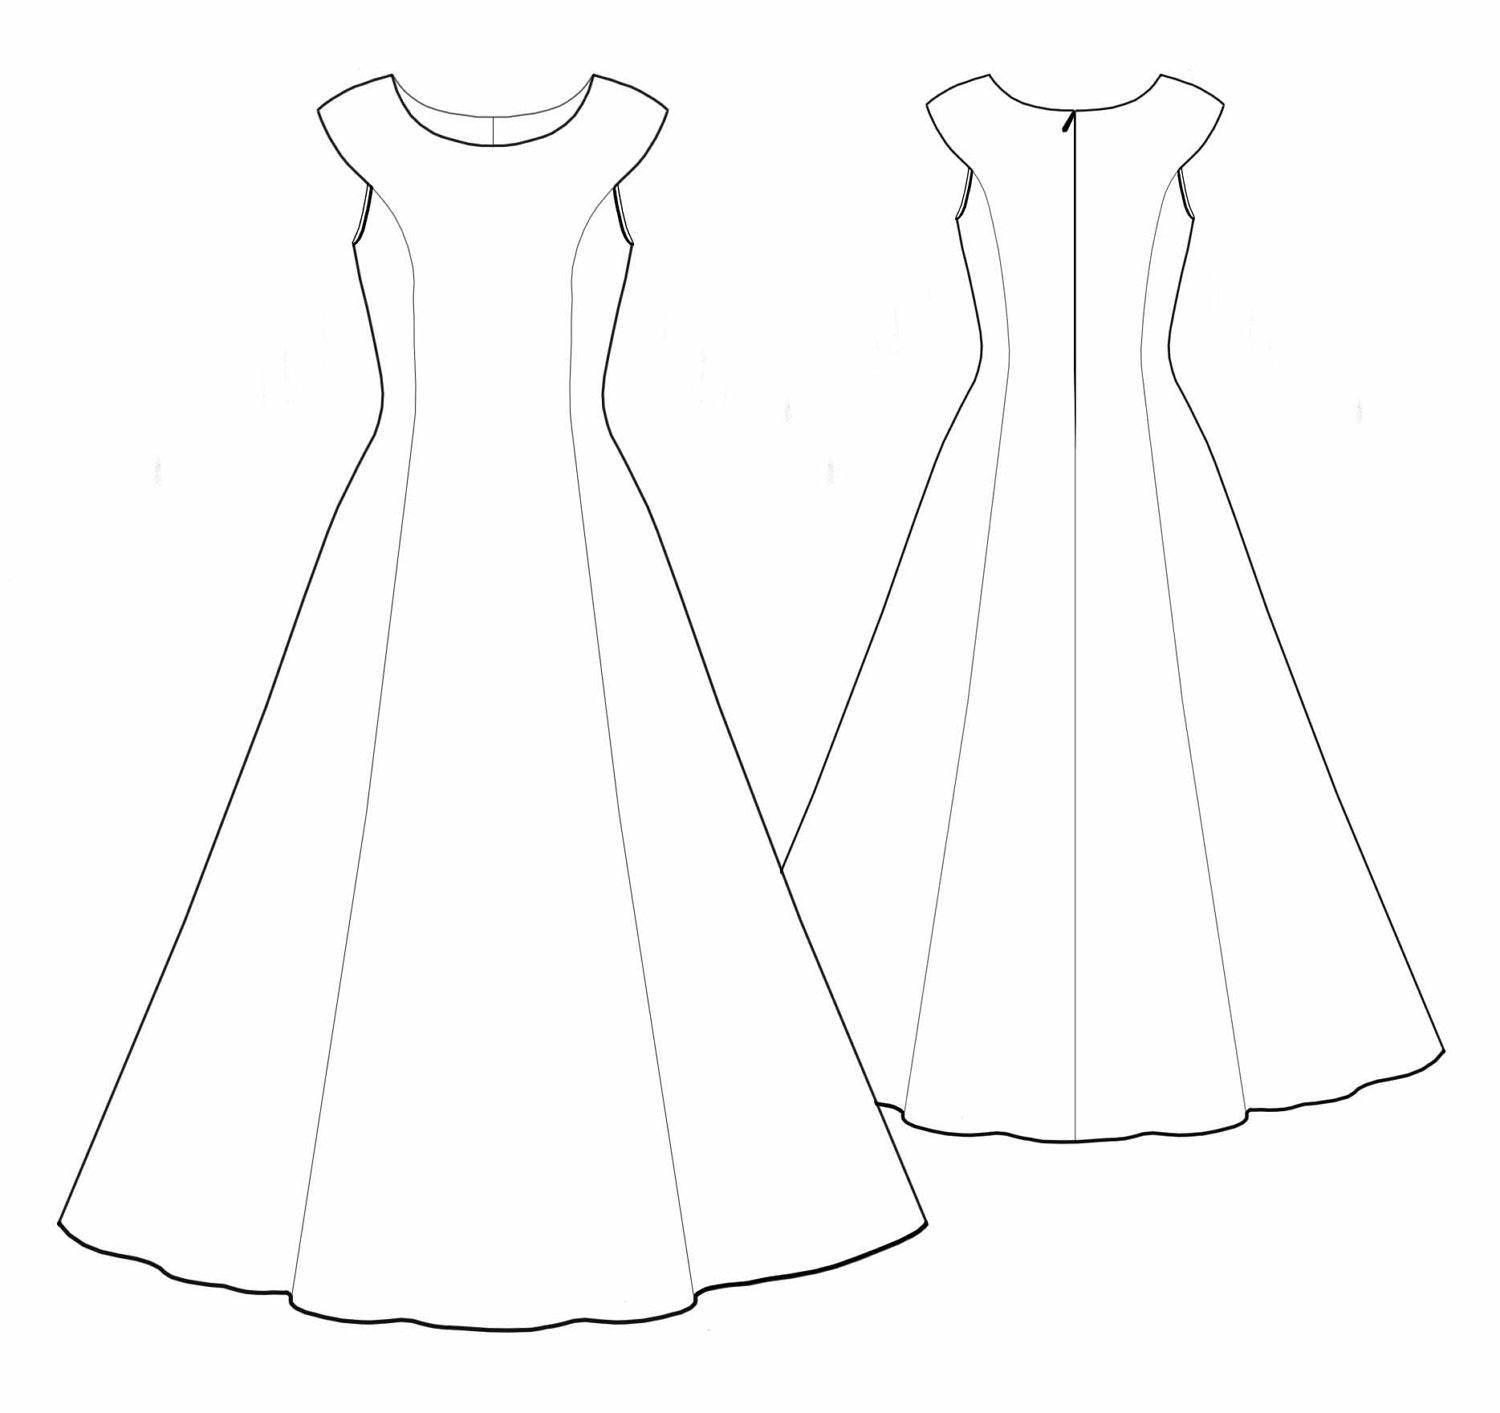 Best wedding dress outline 10143 for Wedding dress patterns free download